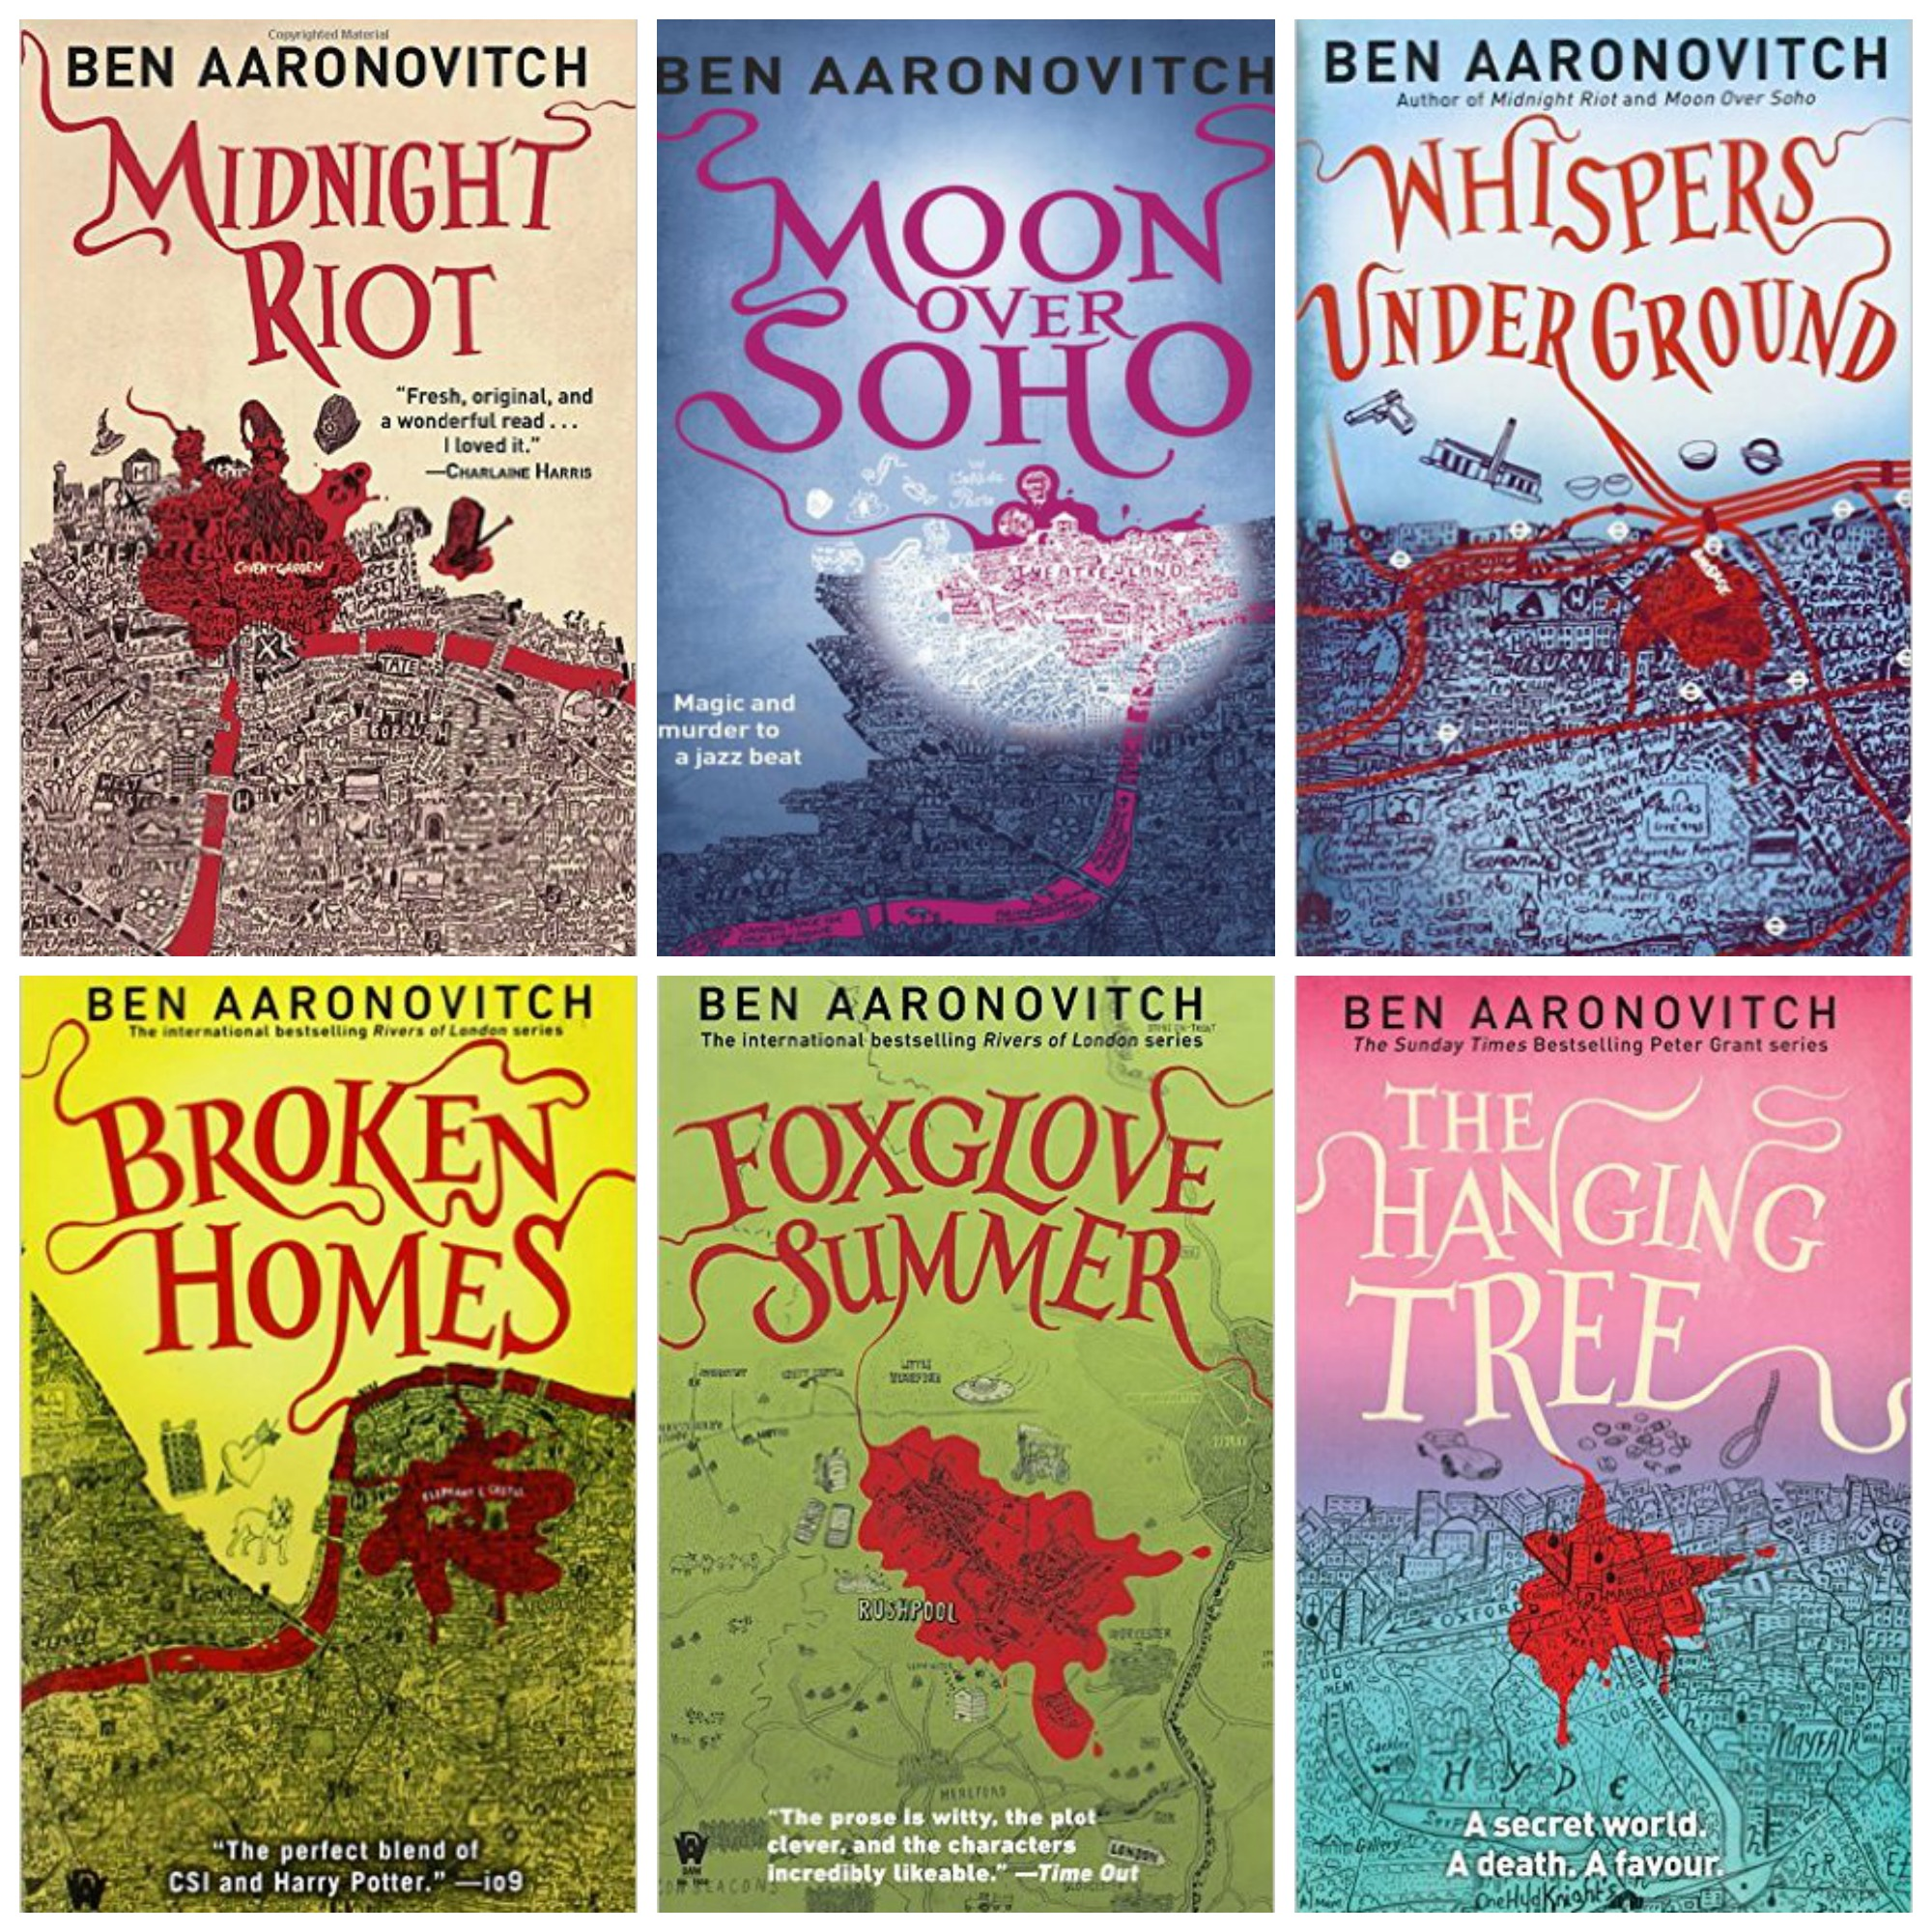 Peter Grant by Ben Aaronovitch series covers